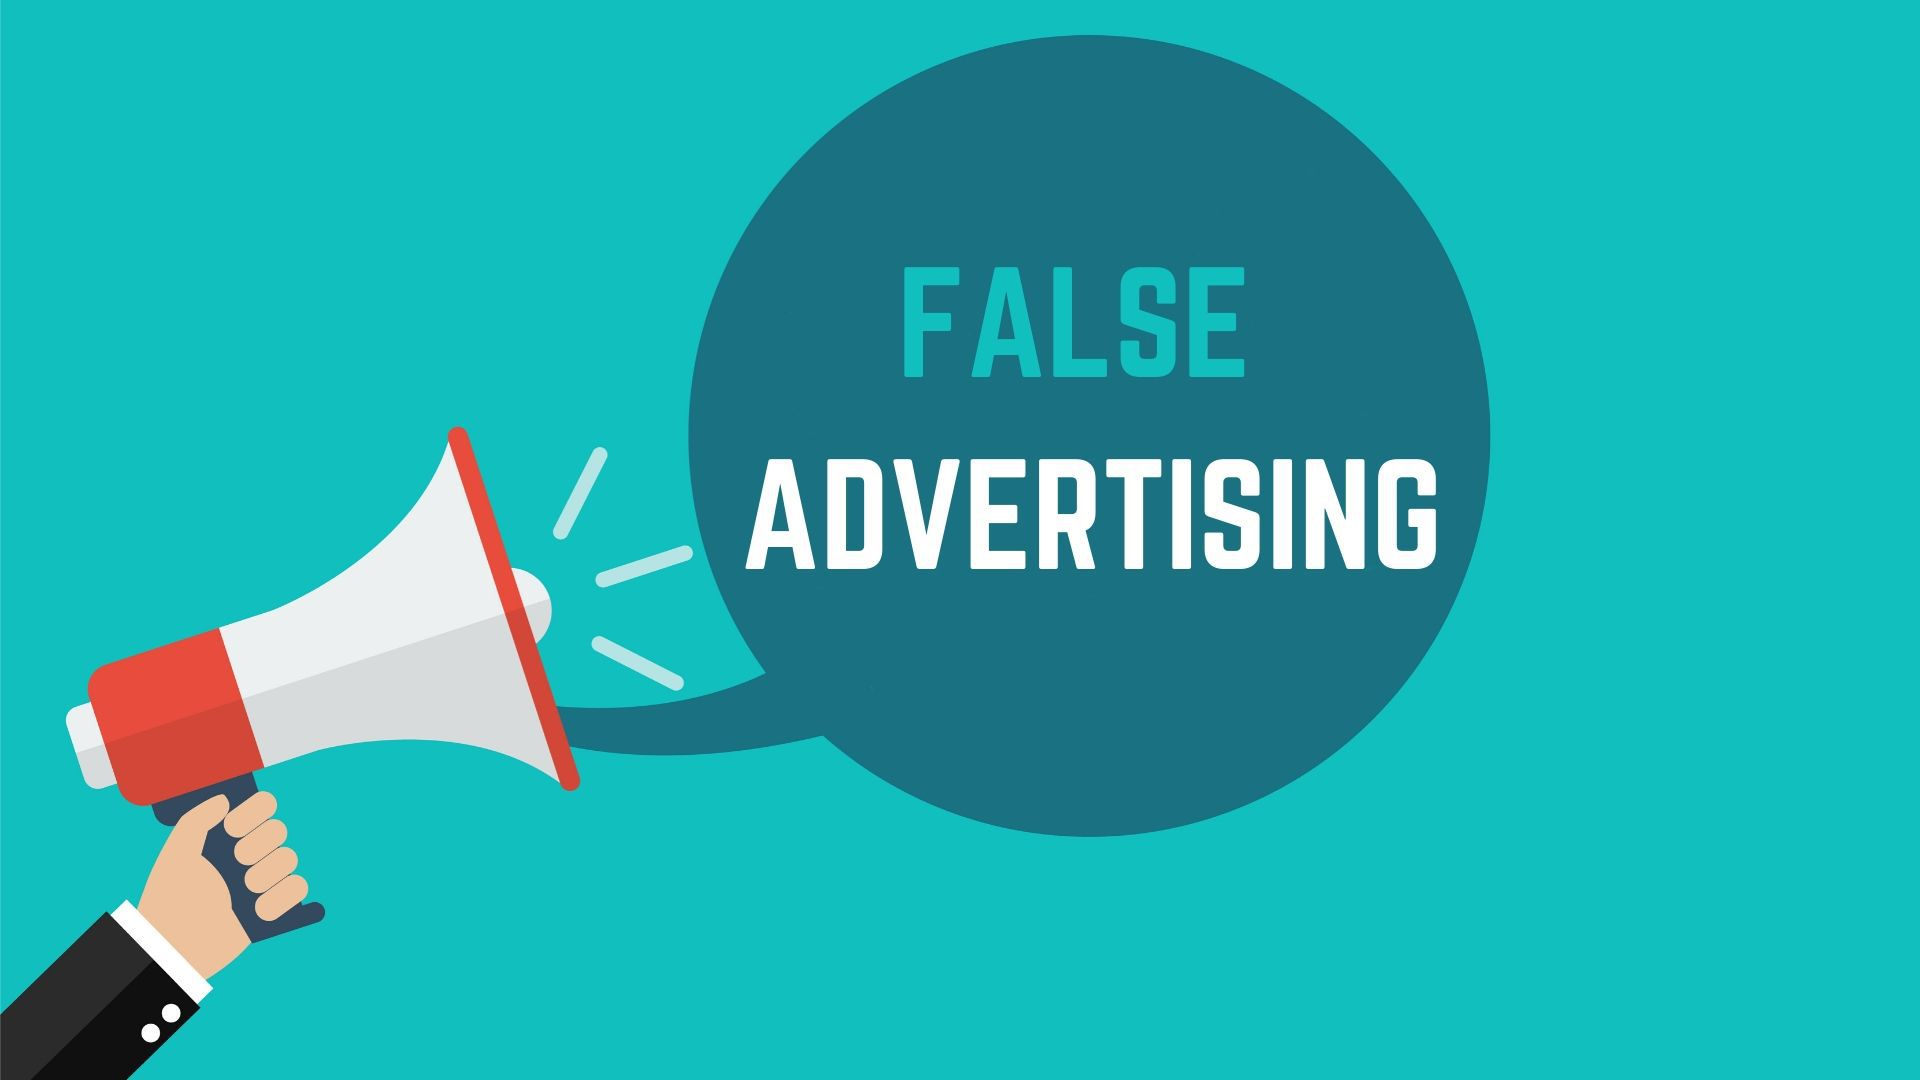 The Legal Implications of False Advertising and What They